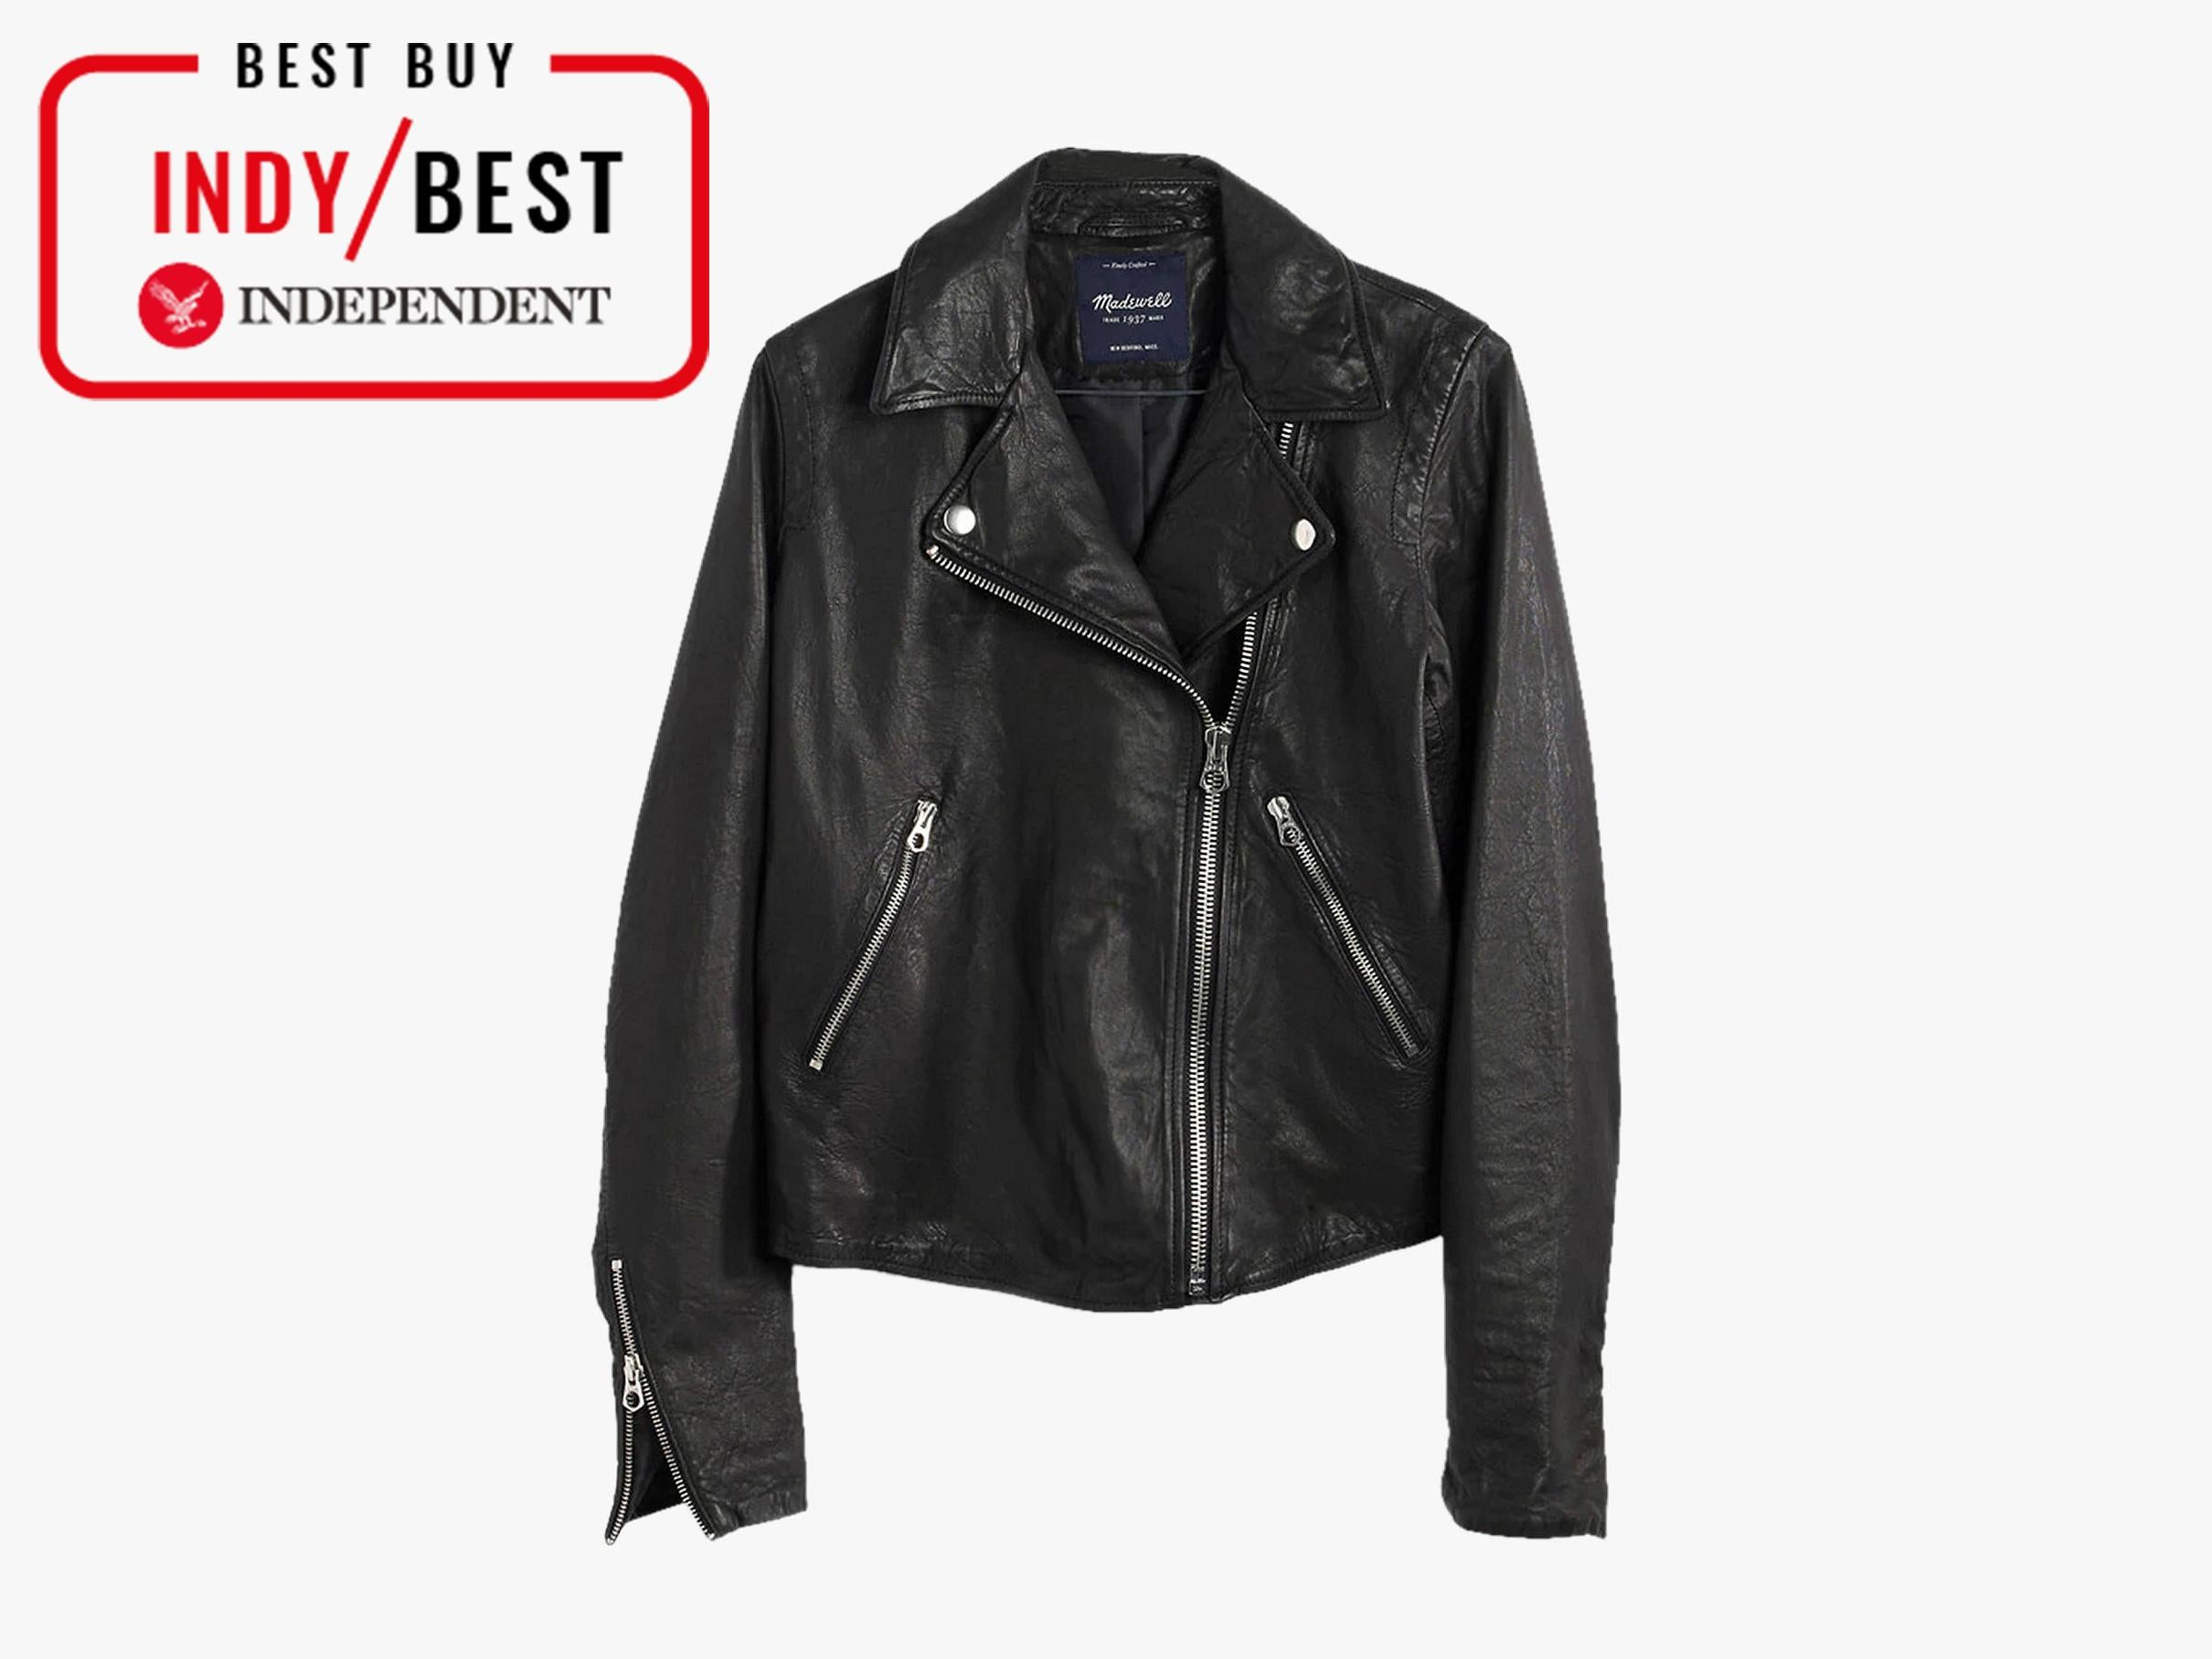 d3e0885db 10 best women's leather jackets | The Independent